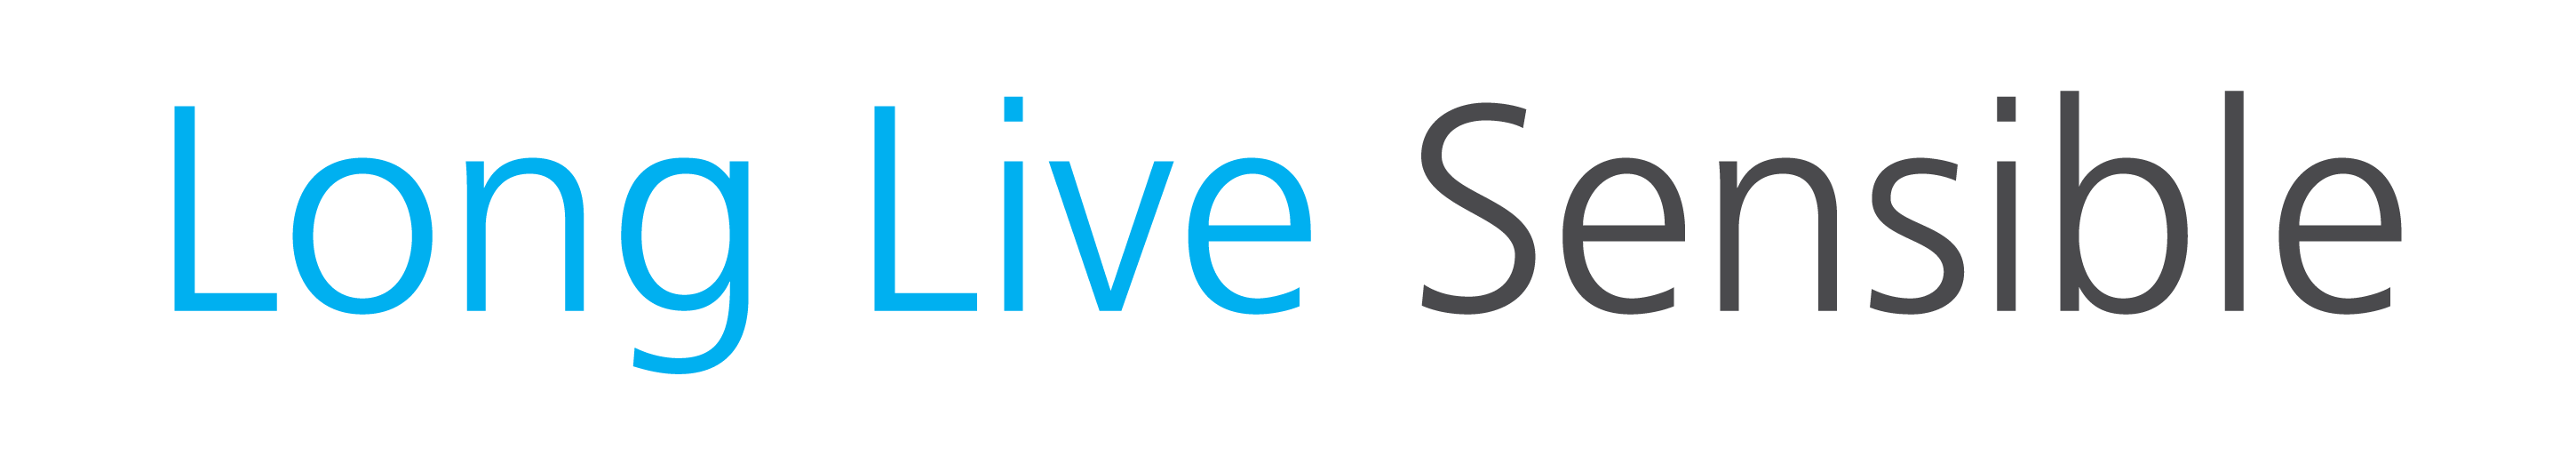 Long-Live-Sensible-Logo-(1).png